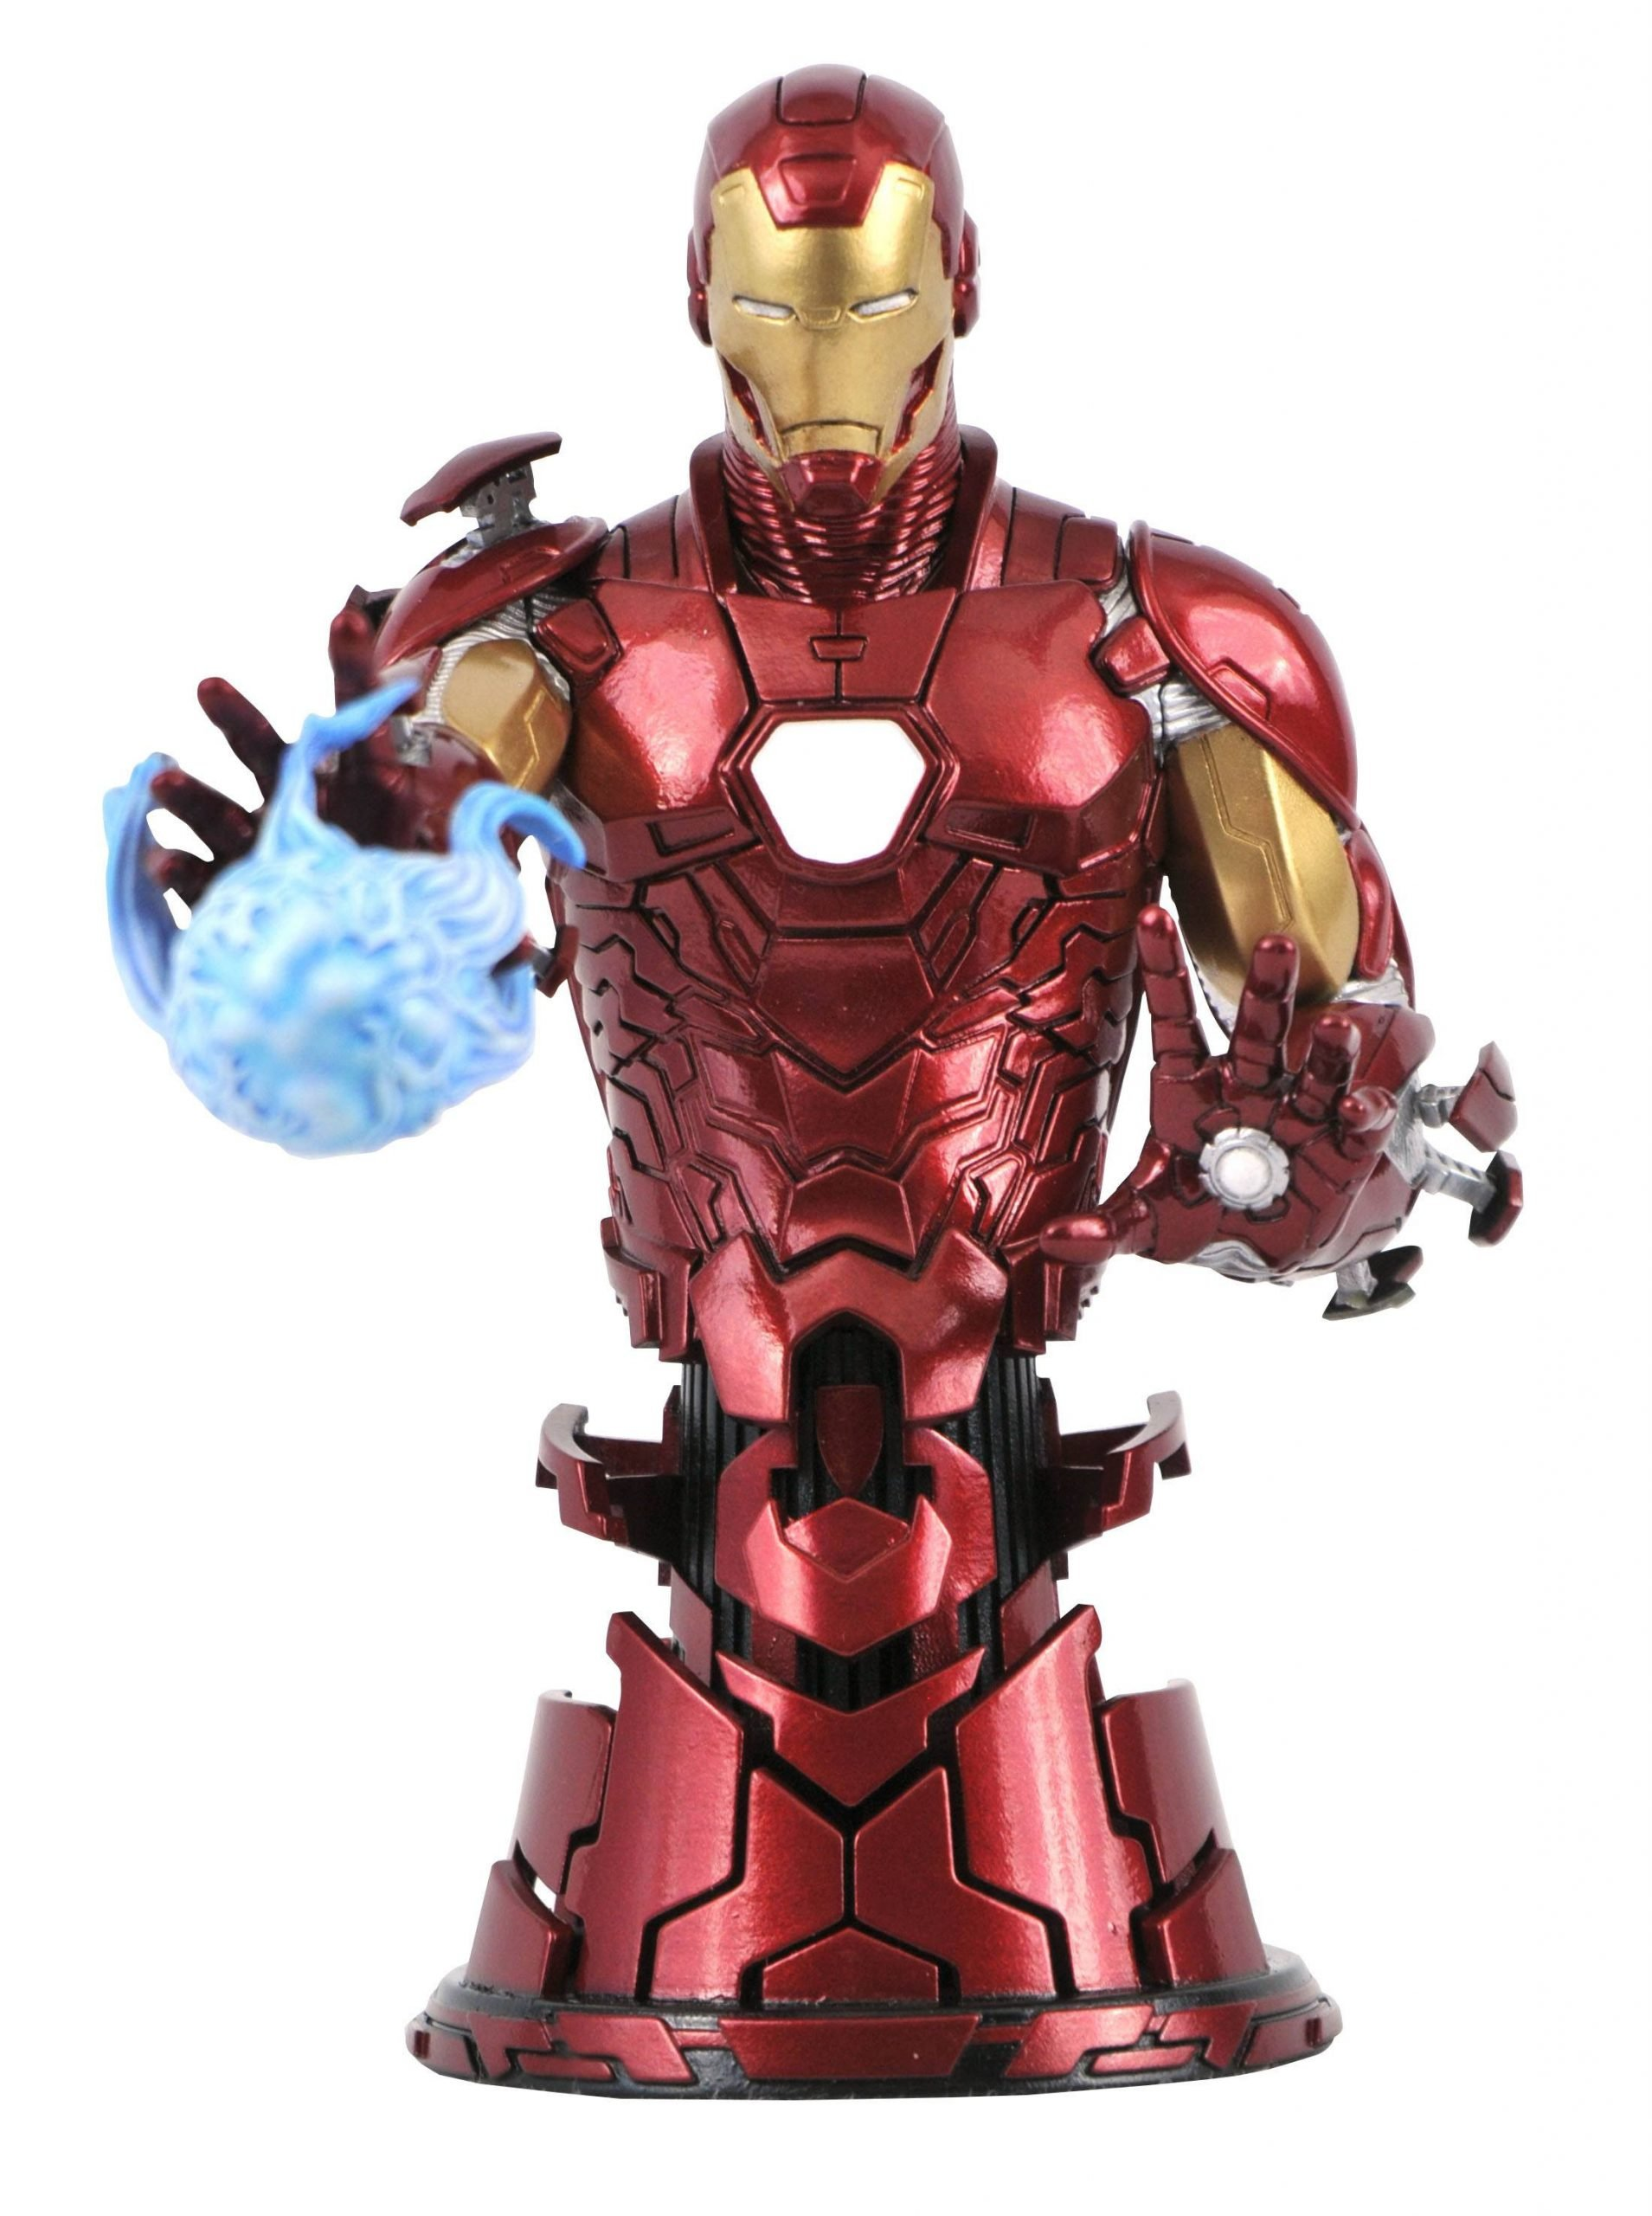 Iron Man 1-7 Scale Bust